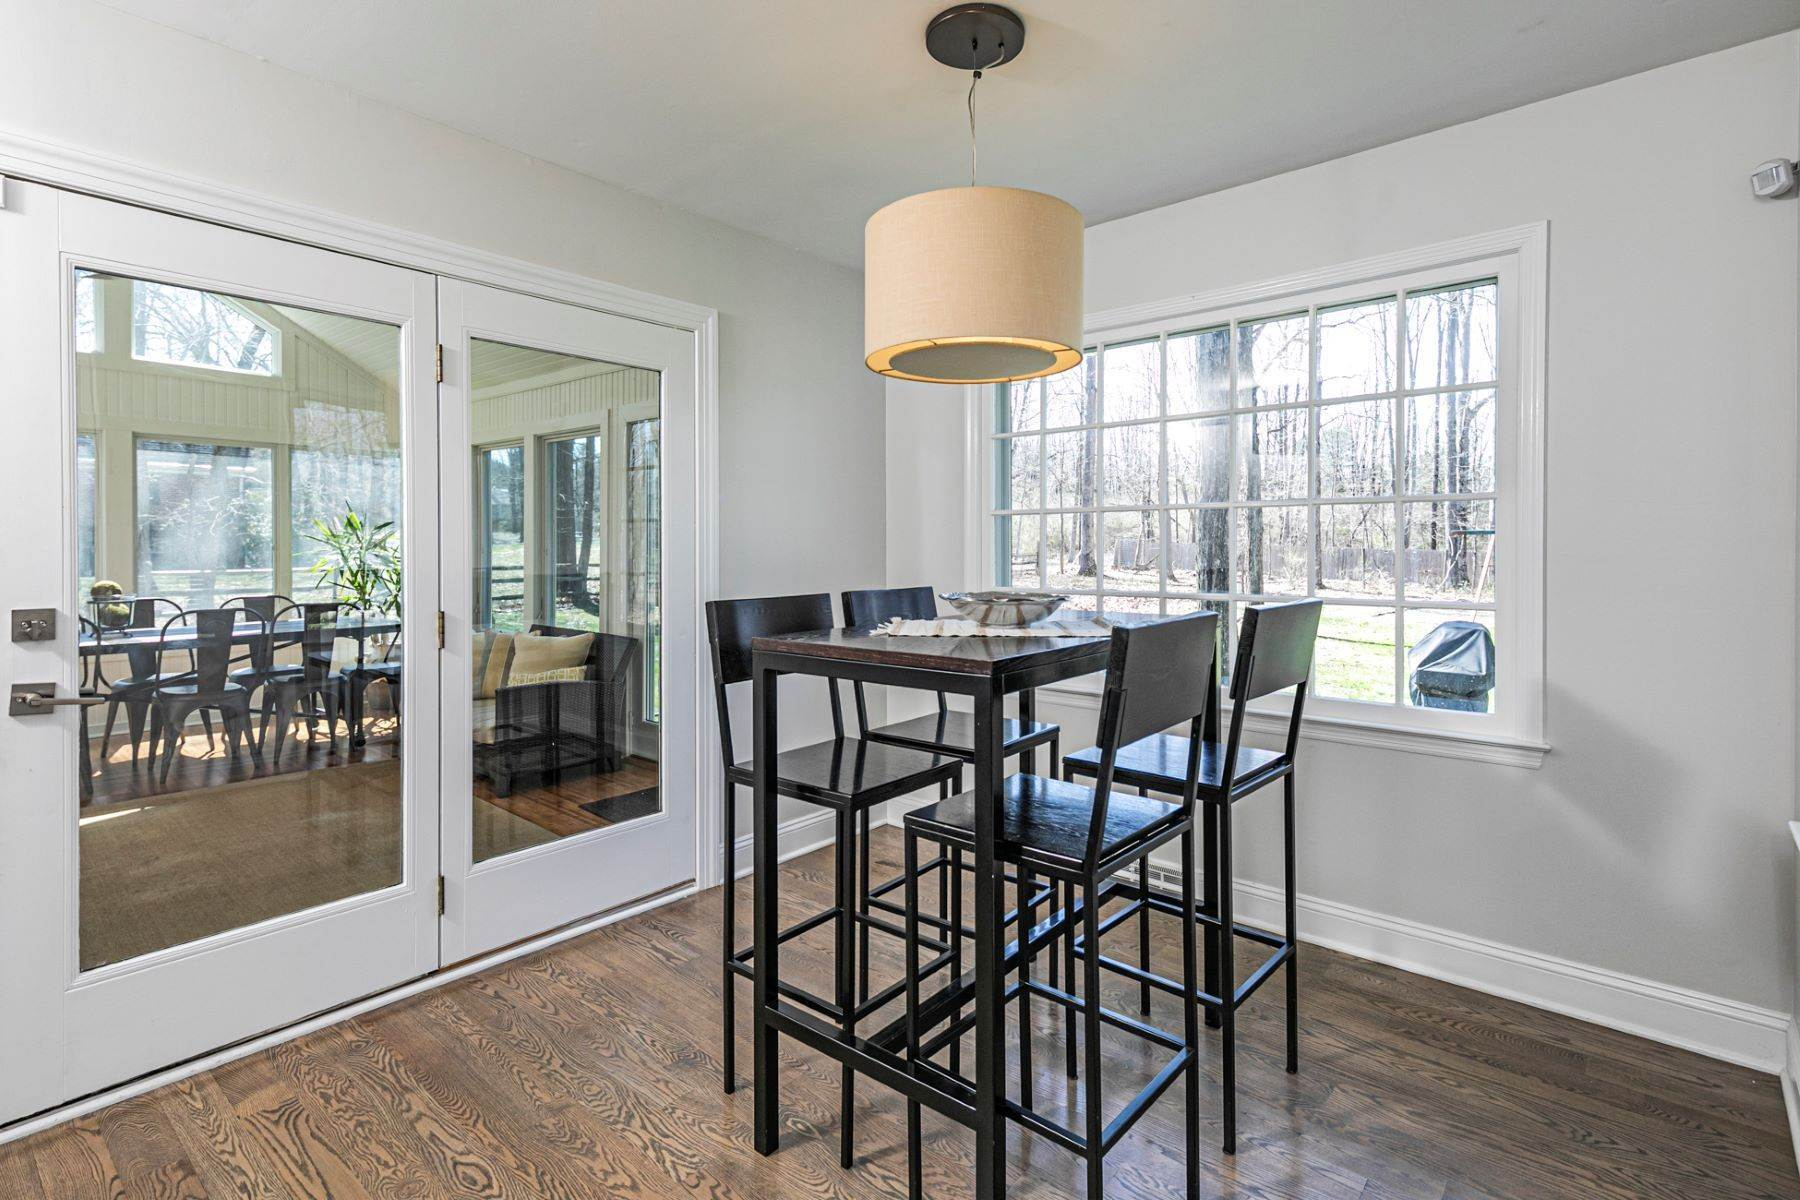 19. Single Family Homes for Sale at A New Kitchen And Updated Baths Make This Home Sparkle 91 West Shore Drive, Pennington, New Jersey 08534 United States